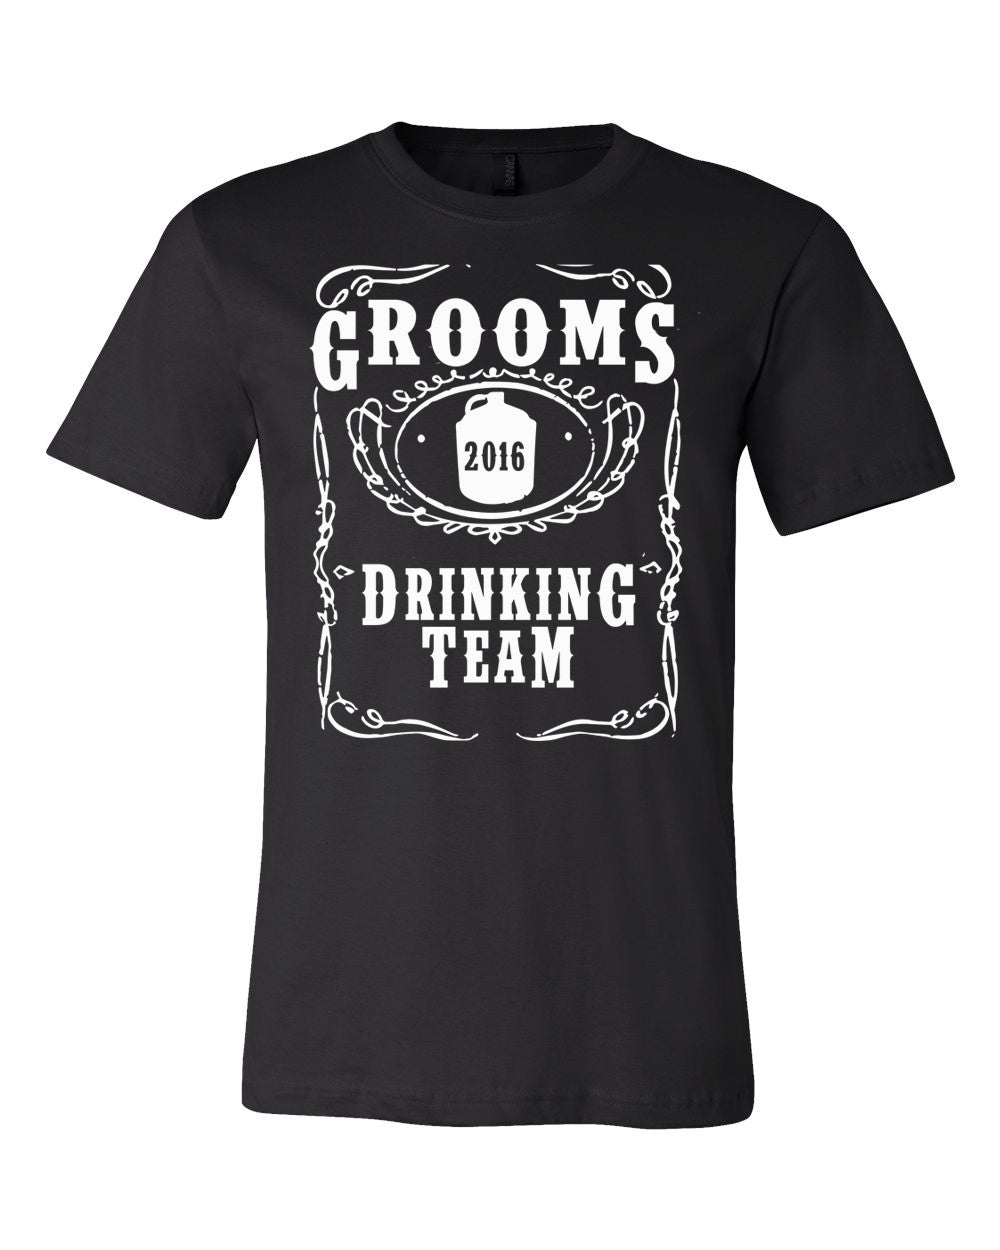 GROOMS DRINKING Team - T Shirt Available in X Small - XXXX Large